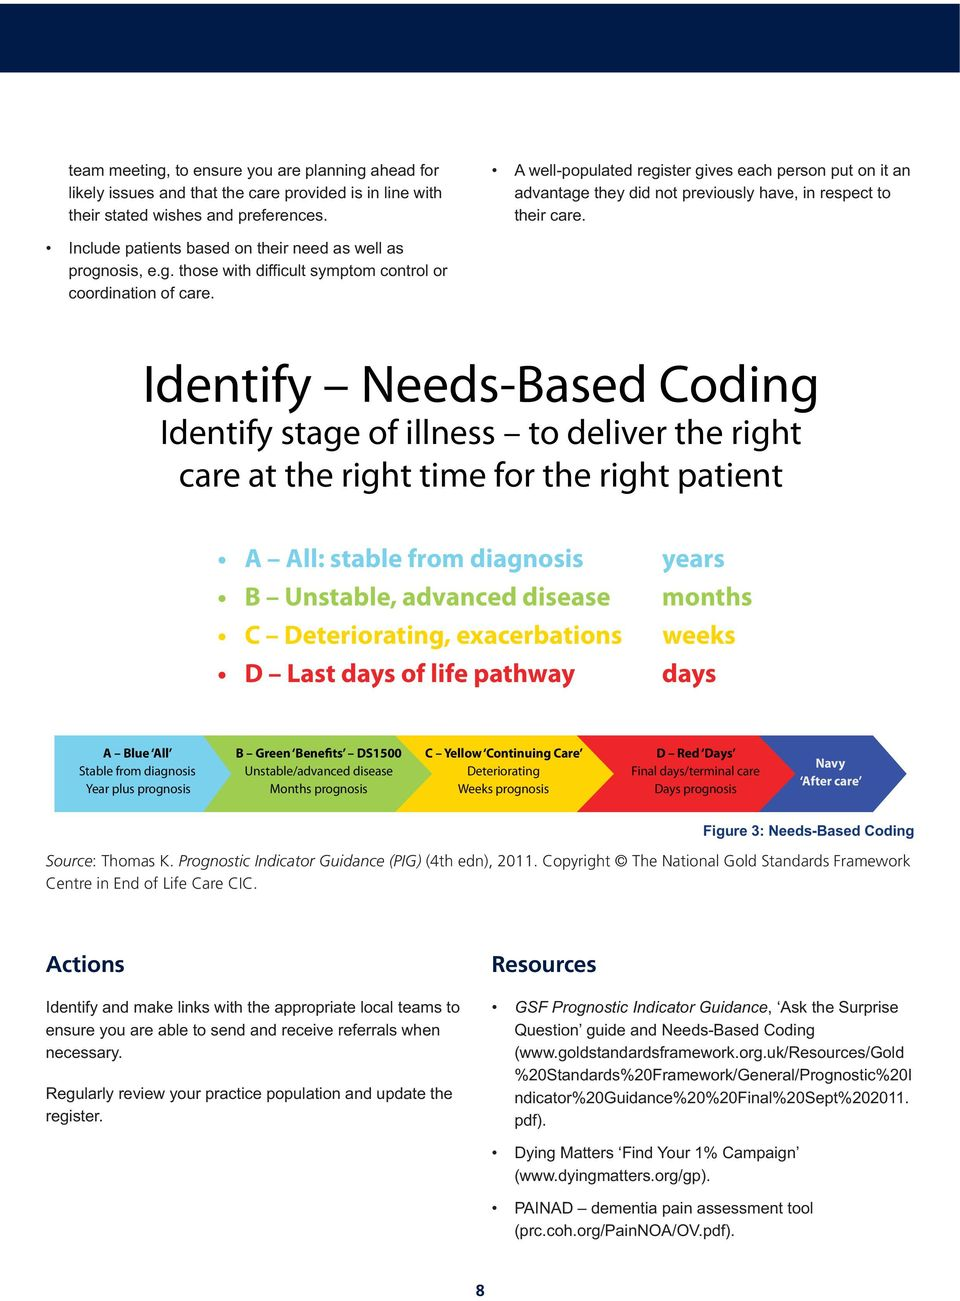 Identify Needs-Based Coding Identify stage of illness to deliver the right care at the right time for the right patient A Blue All Stable from diagnosis Year plus prognosis B Green Benefits DS1500